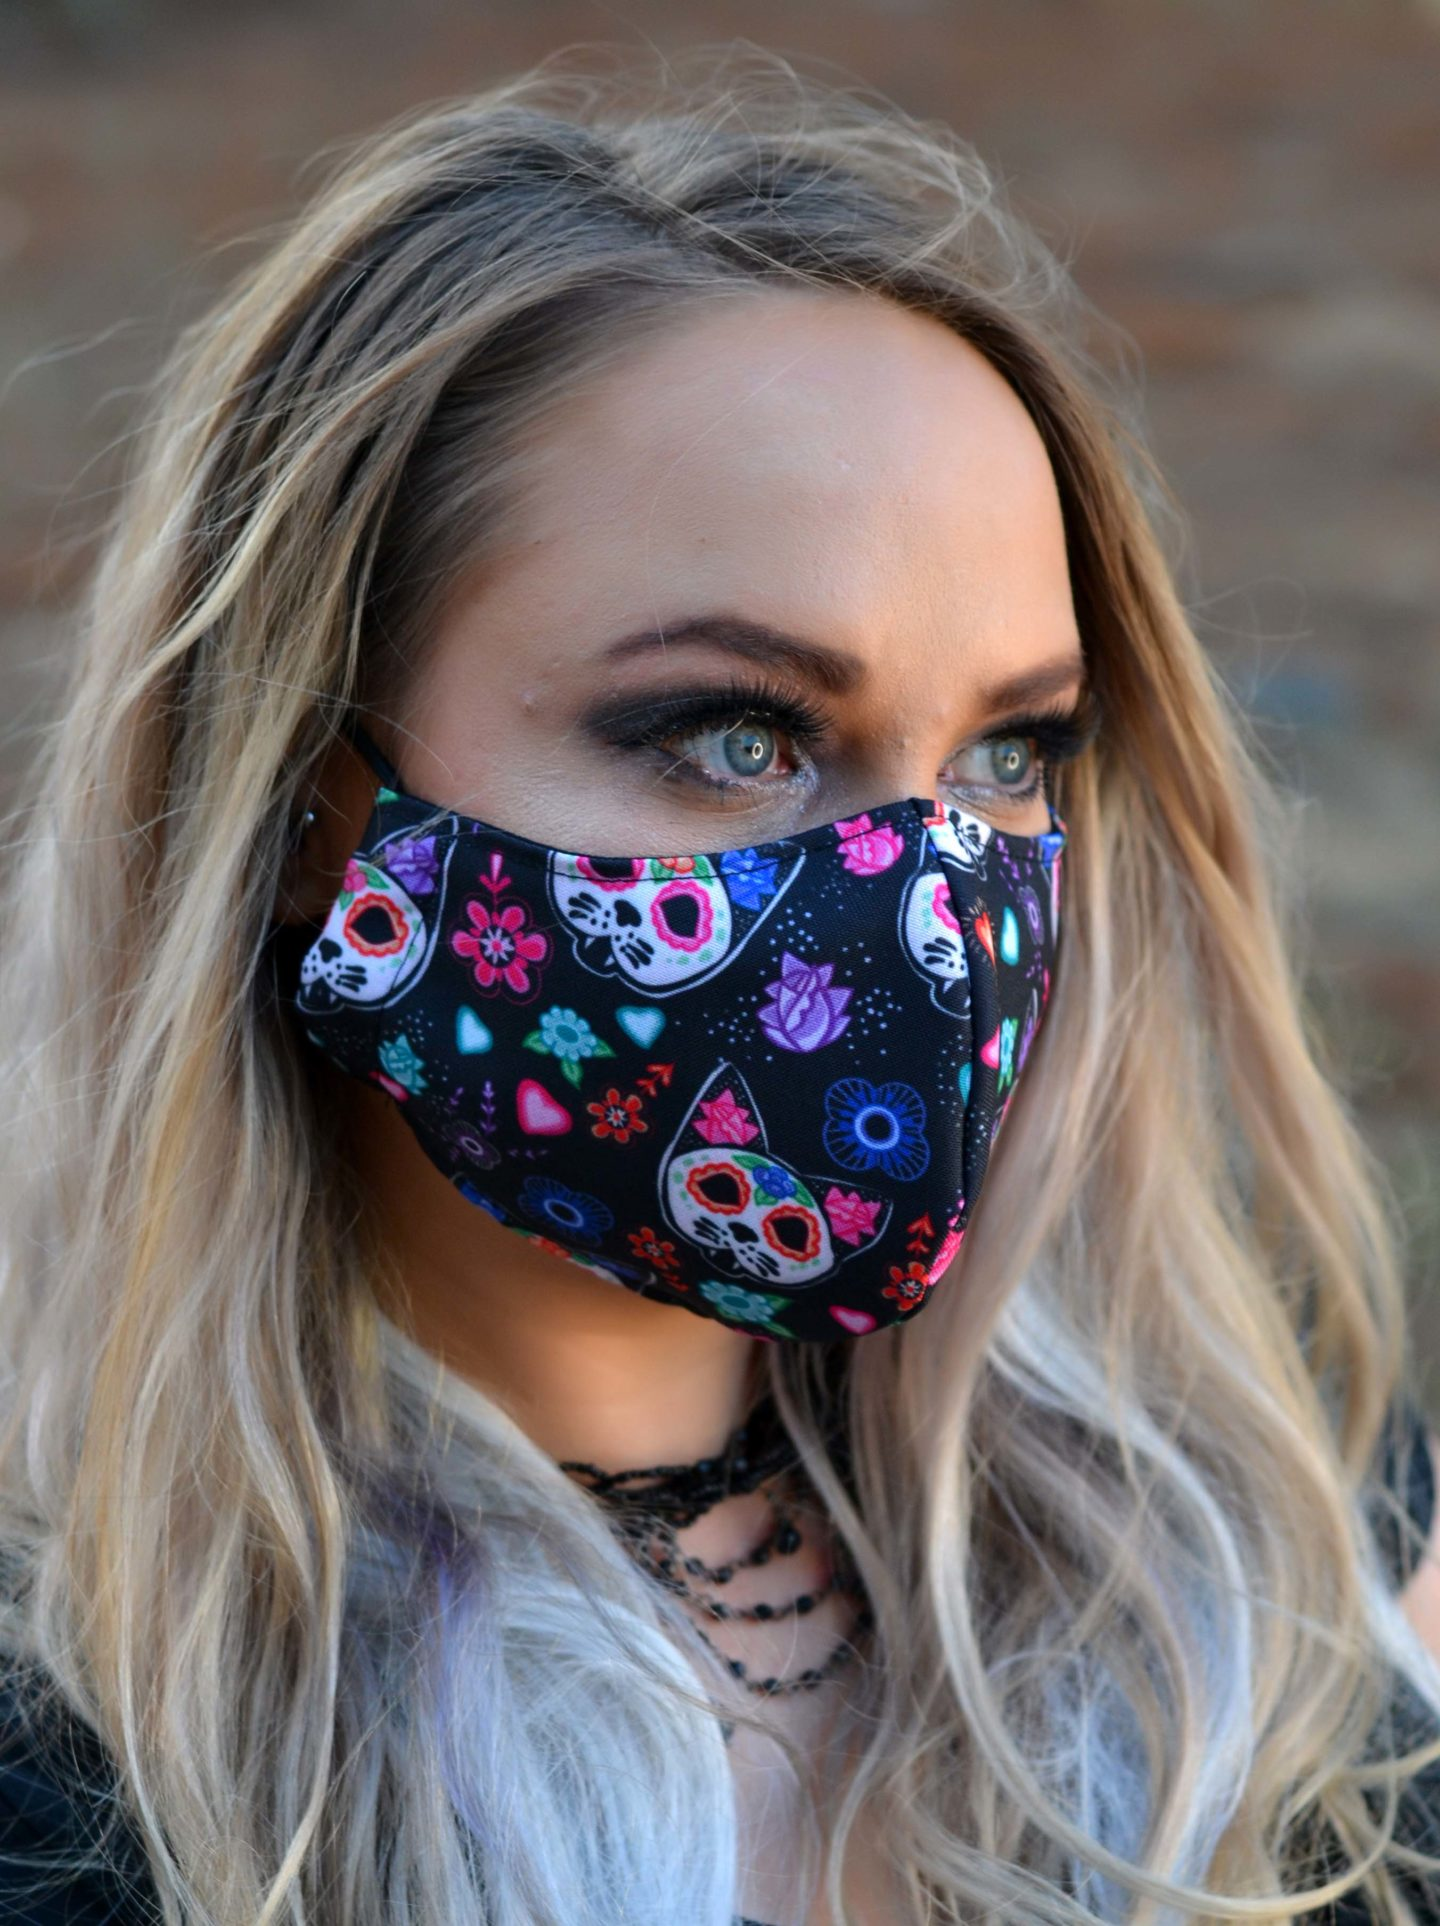 Pivoting in a Pandemic – With Lisa from Frockabilly